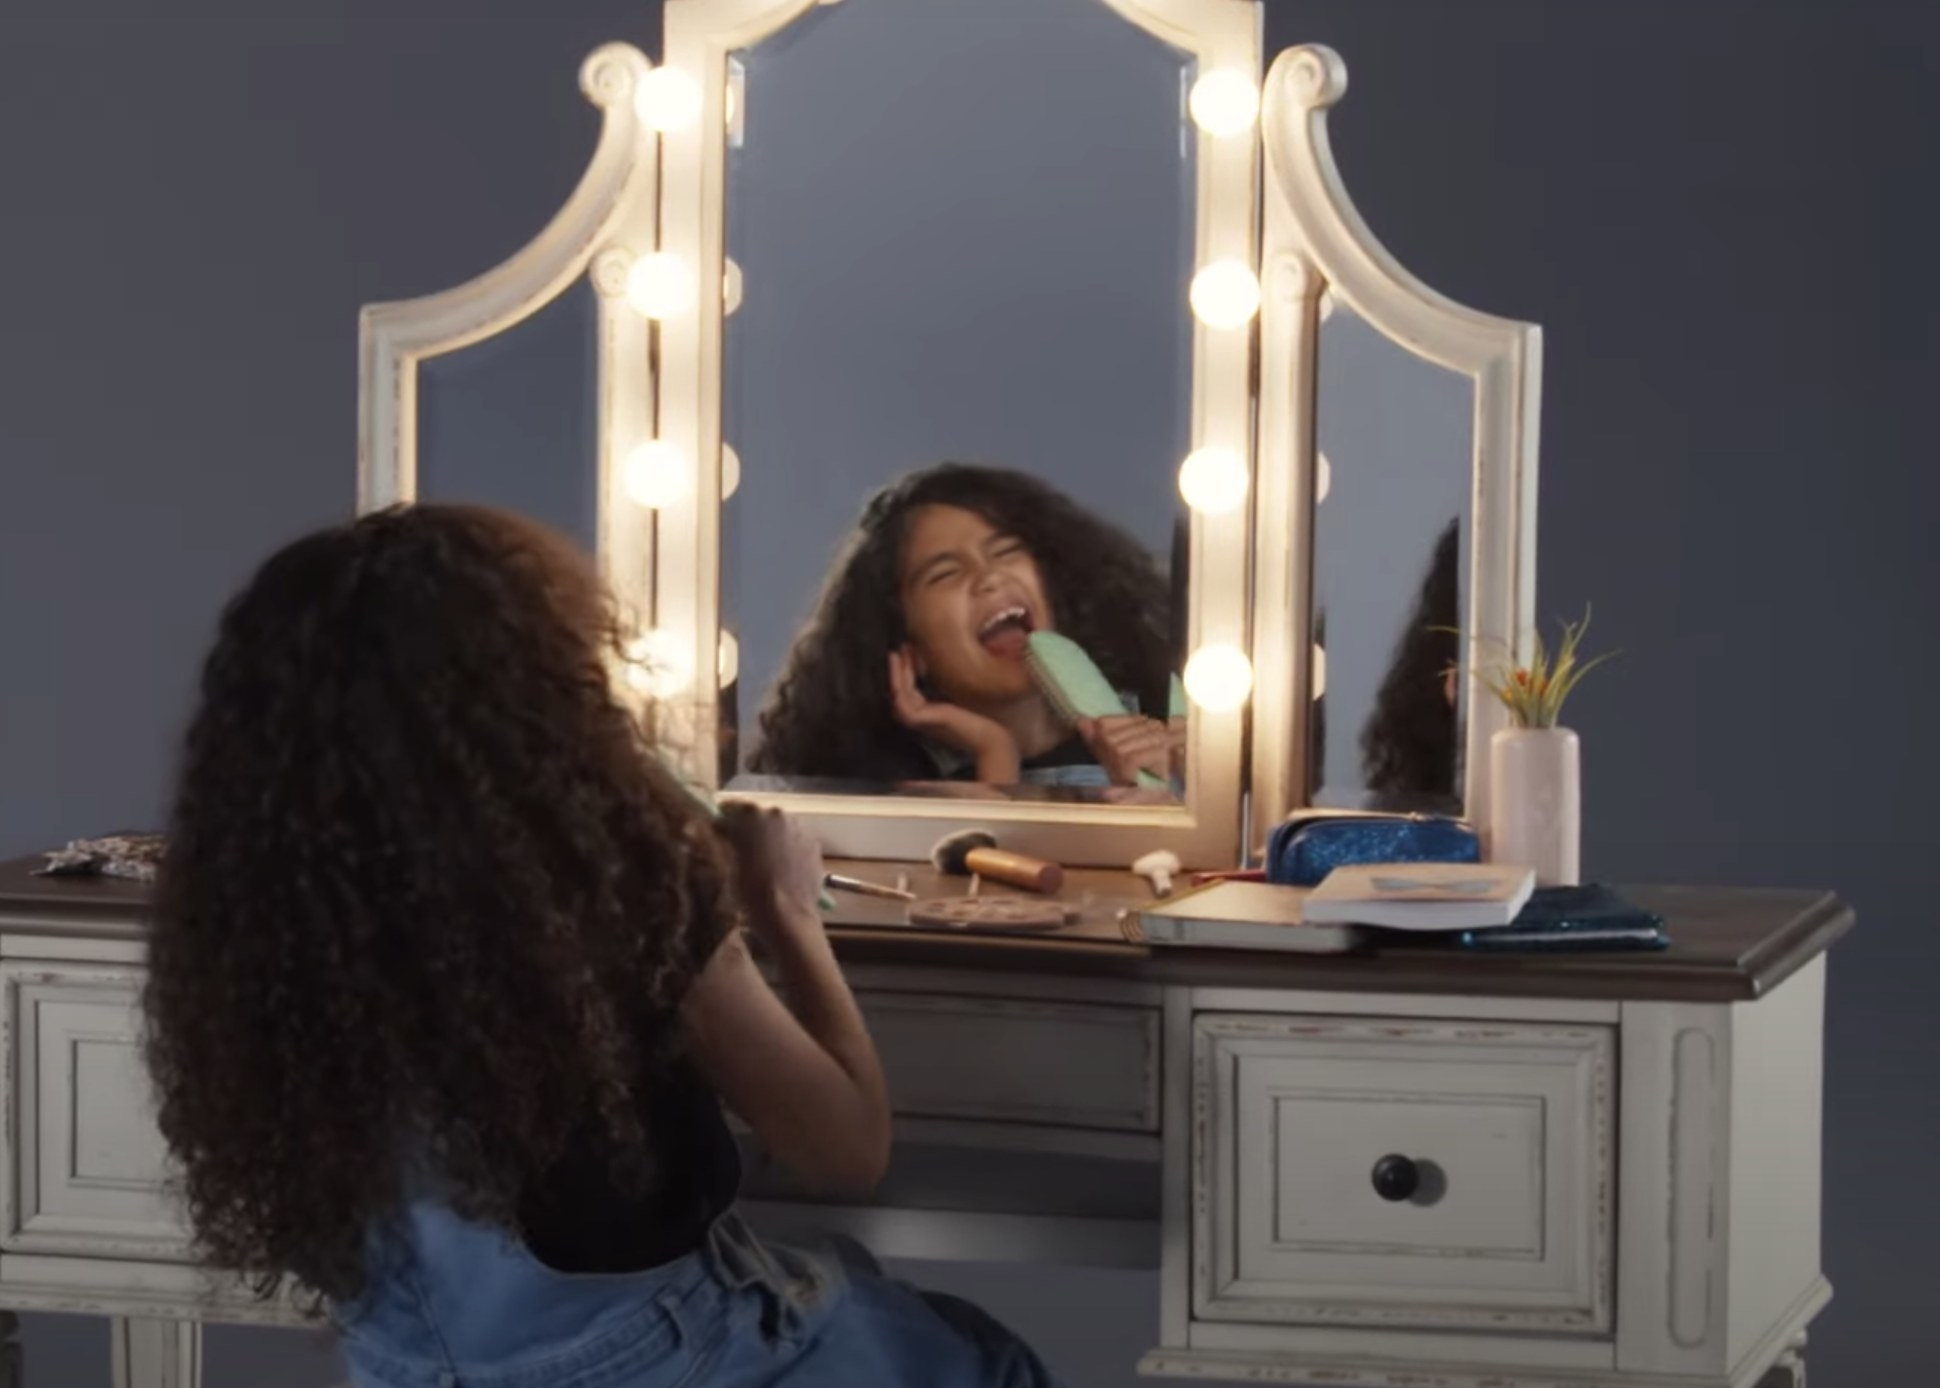 Monroe sings into a hairbrush while sitting in front of a vanity